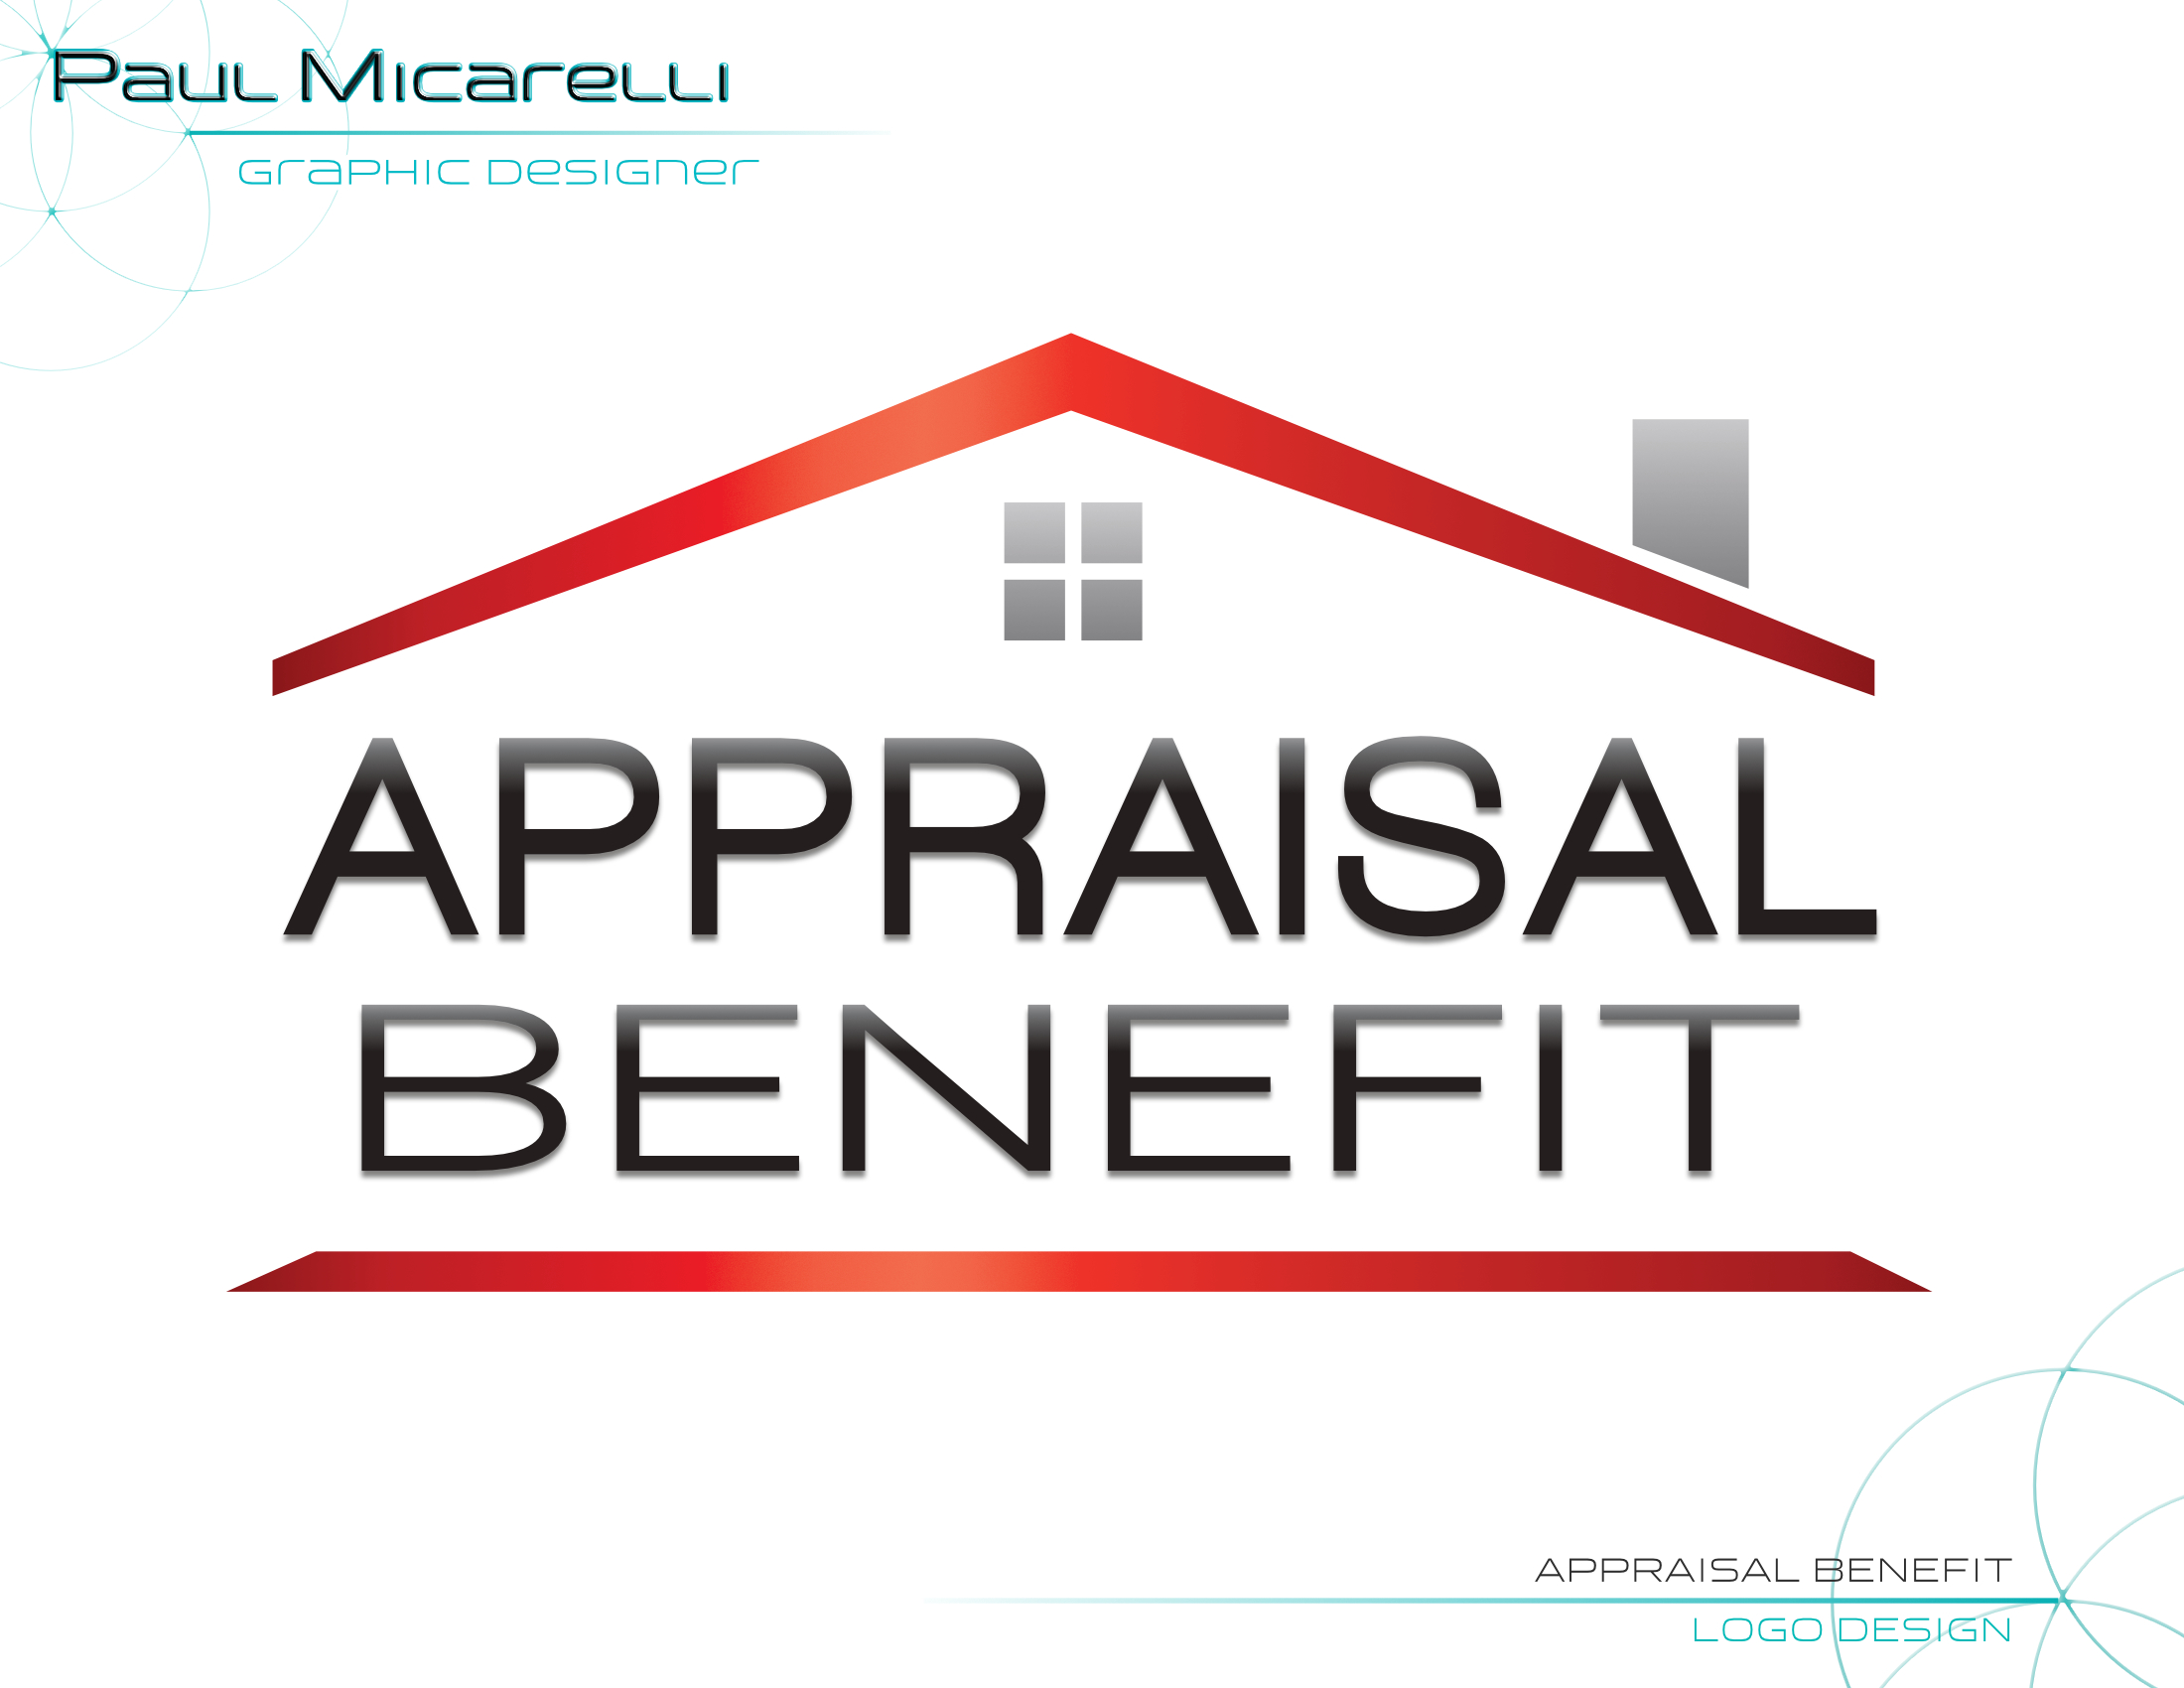 Paul-Micarelli-Appraisal Benefit Logo